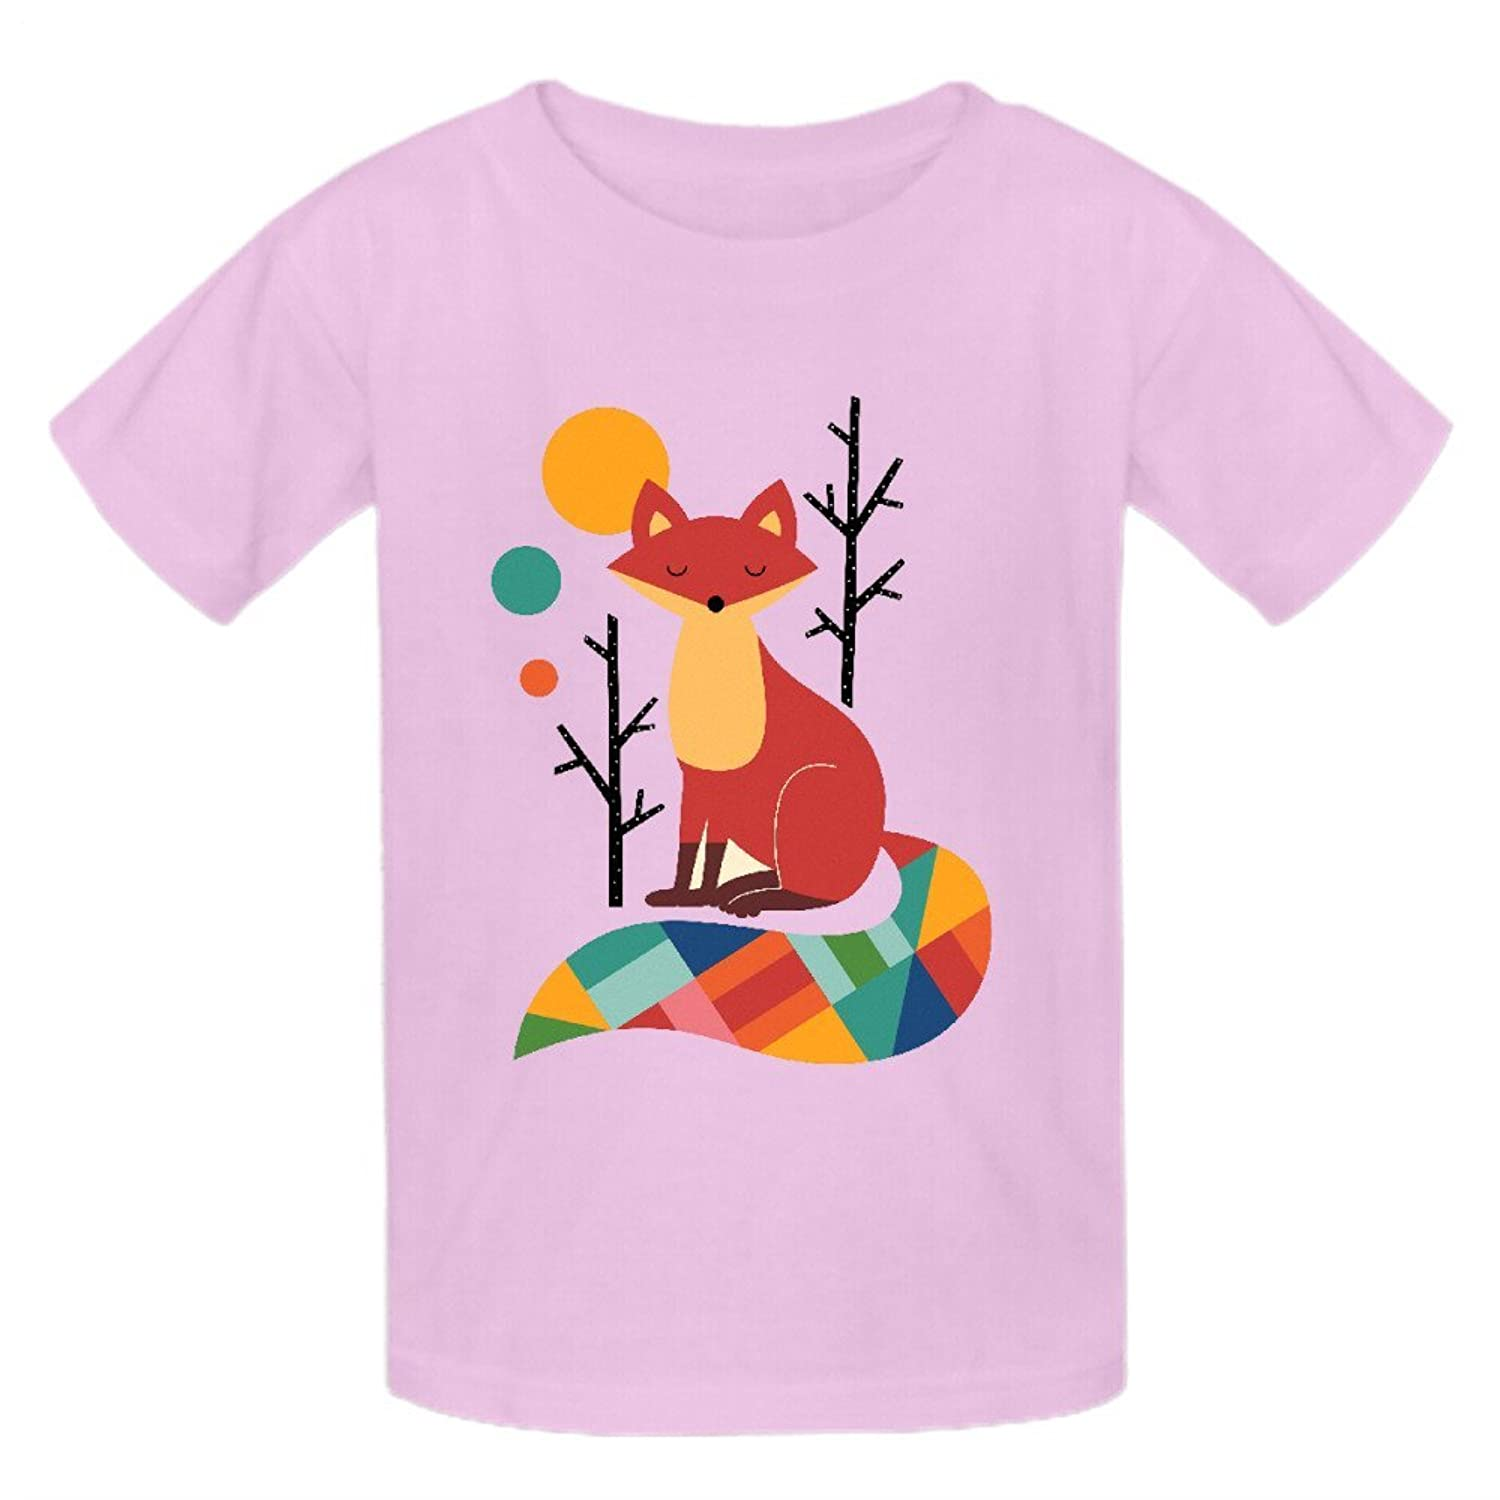 Abover Rainbow Fox Kids Personal Round Neck T Shirt